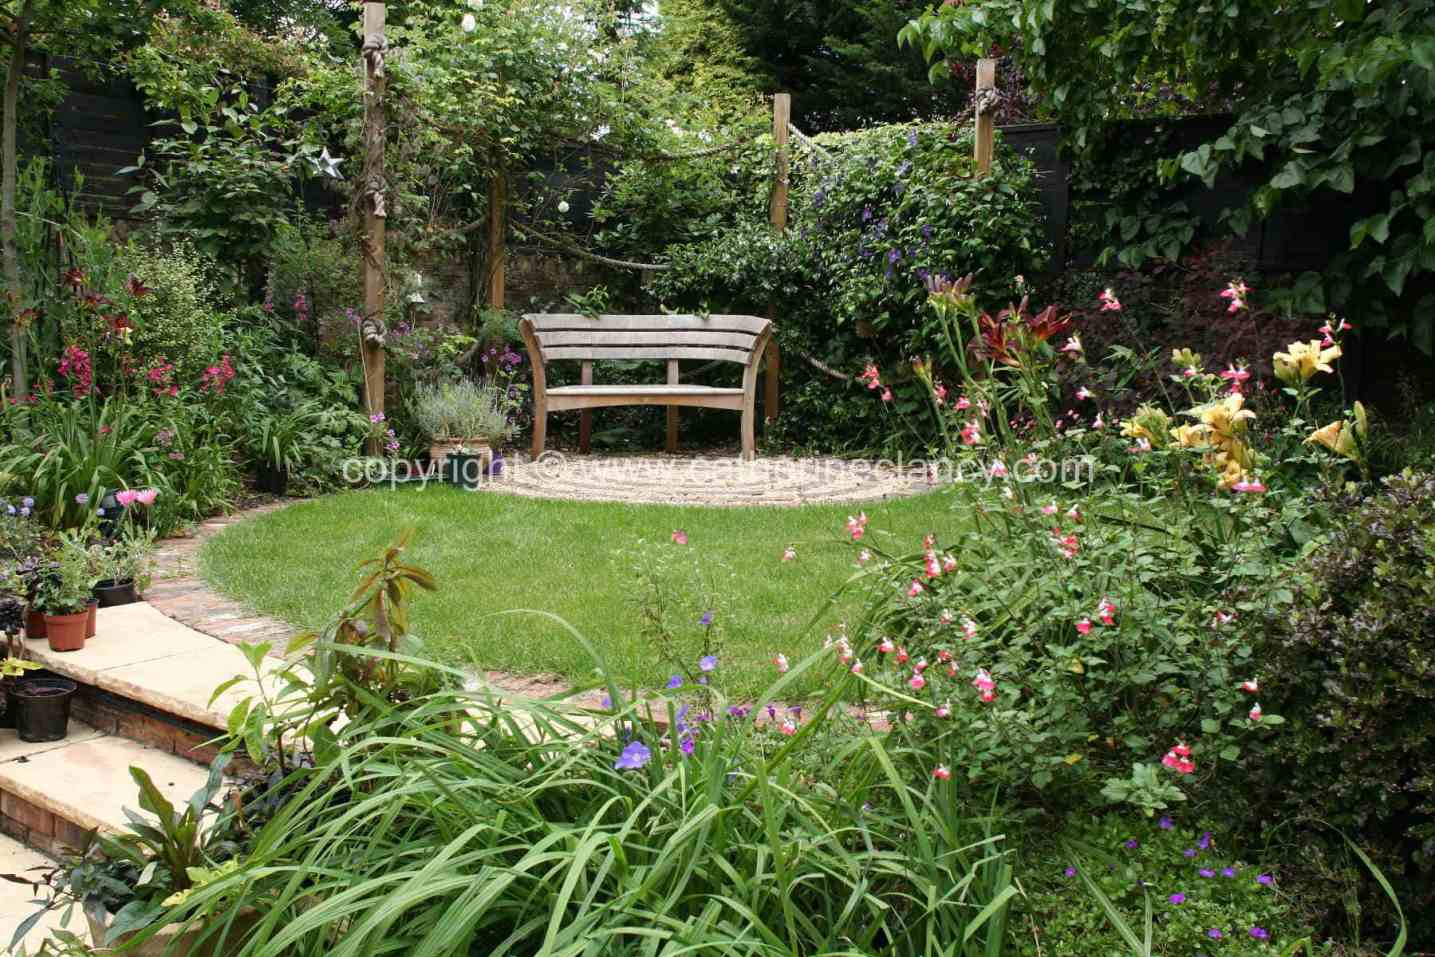 Blackheath walled garden garden design london for North facing back garden designs